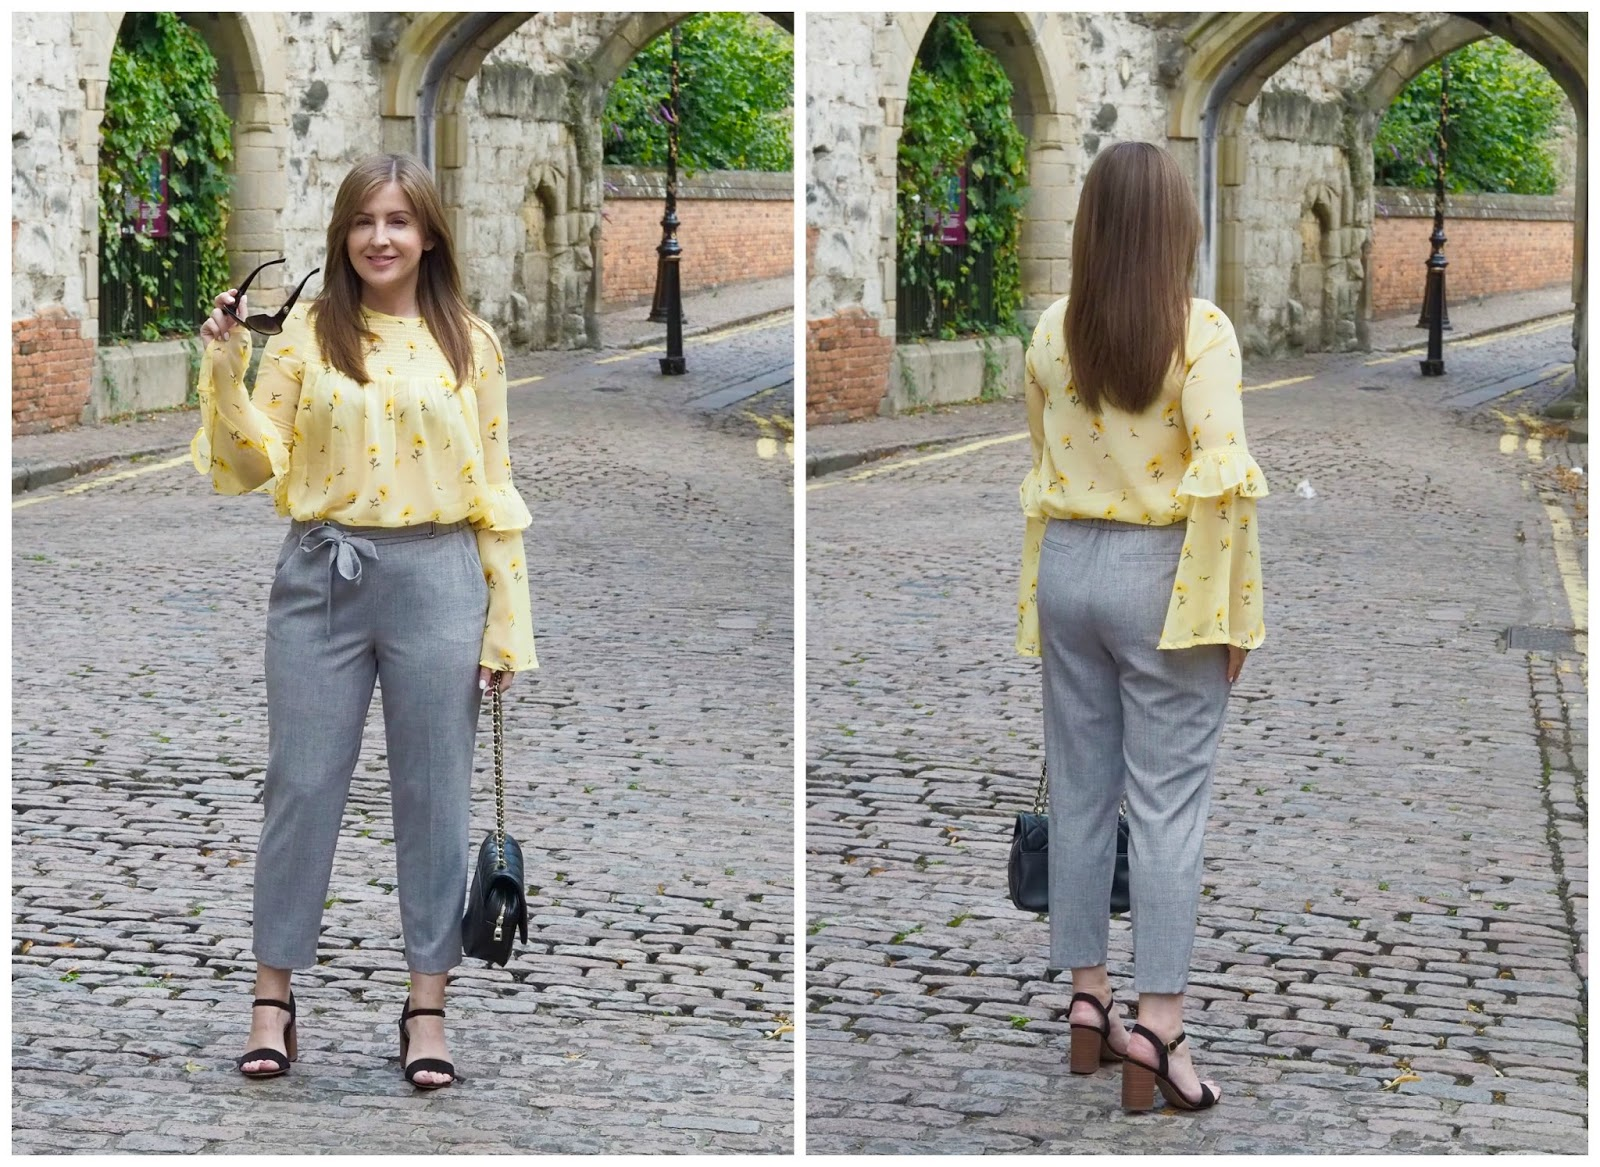 fashion styling \ petite \ cropped trouser \ fashion blogger \ styling the cropped trouser \ Priceless Life of Mine \ Over 40 lifestyle blog